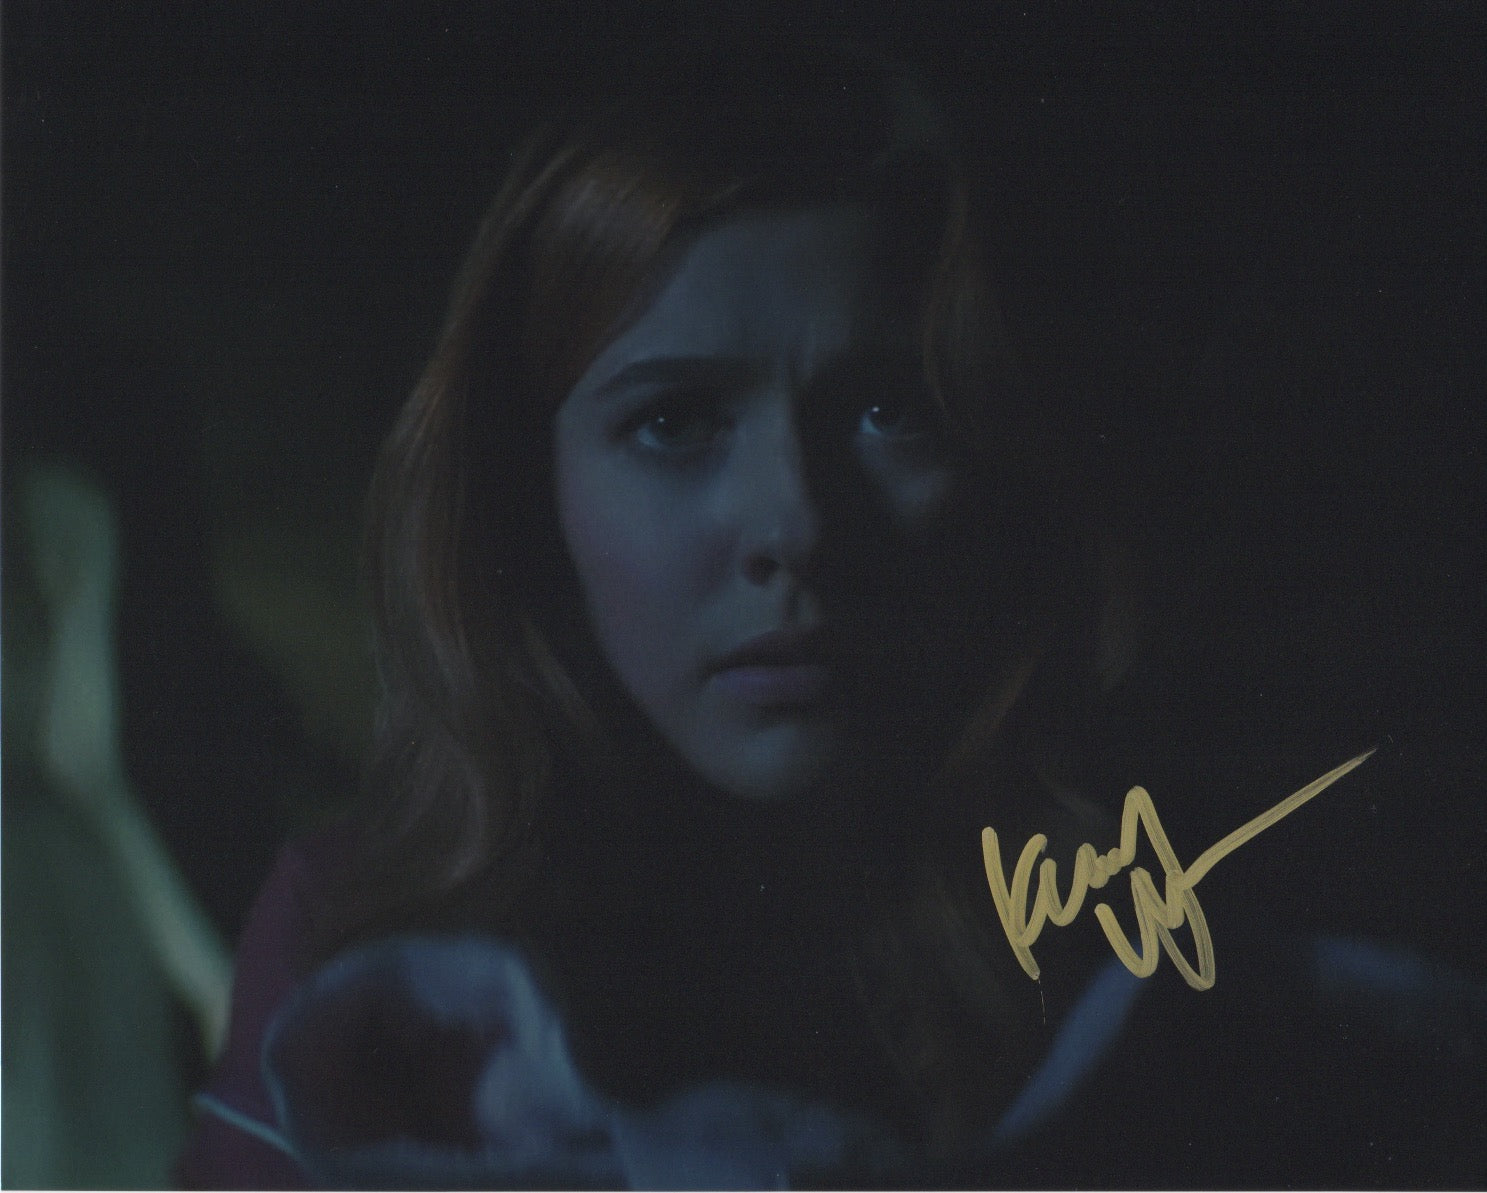 Kennedy McMann Nancy Drew Signed Autograph 8x10 Photo #7 - Outlaw Hobbies Authentic Autographs